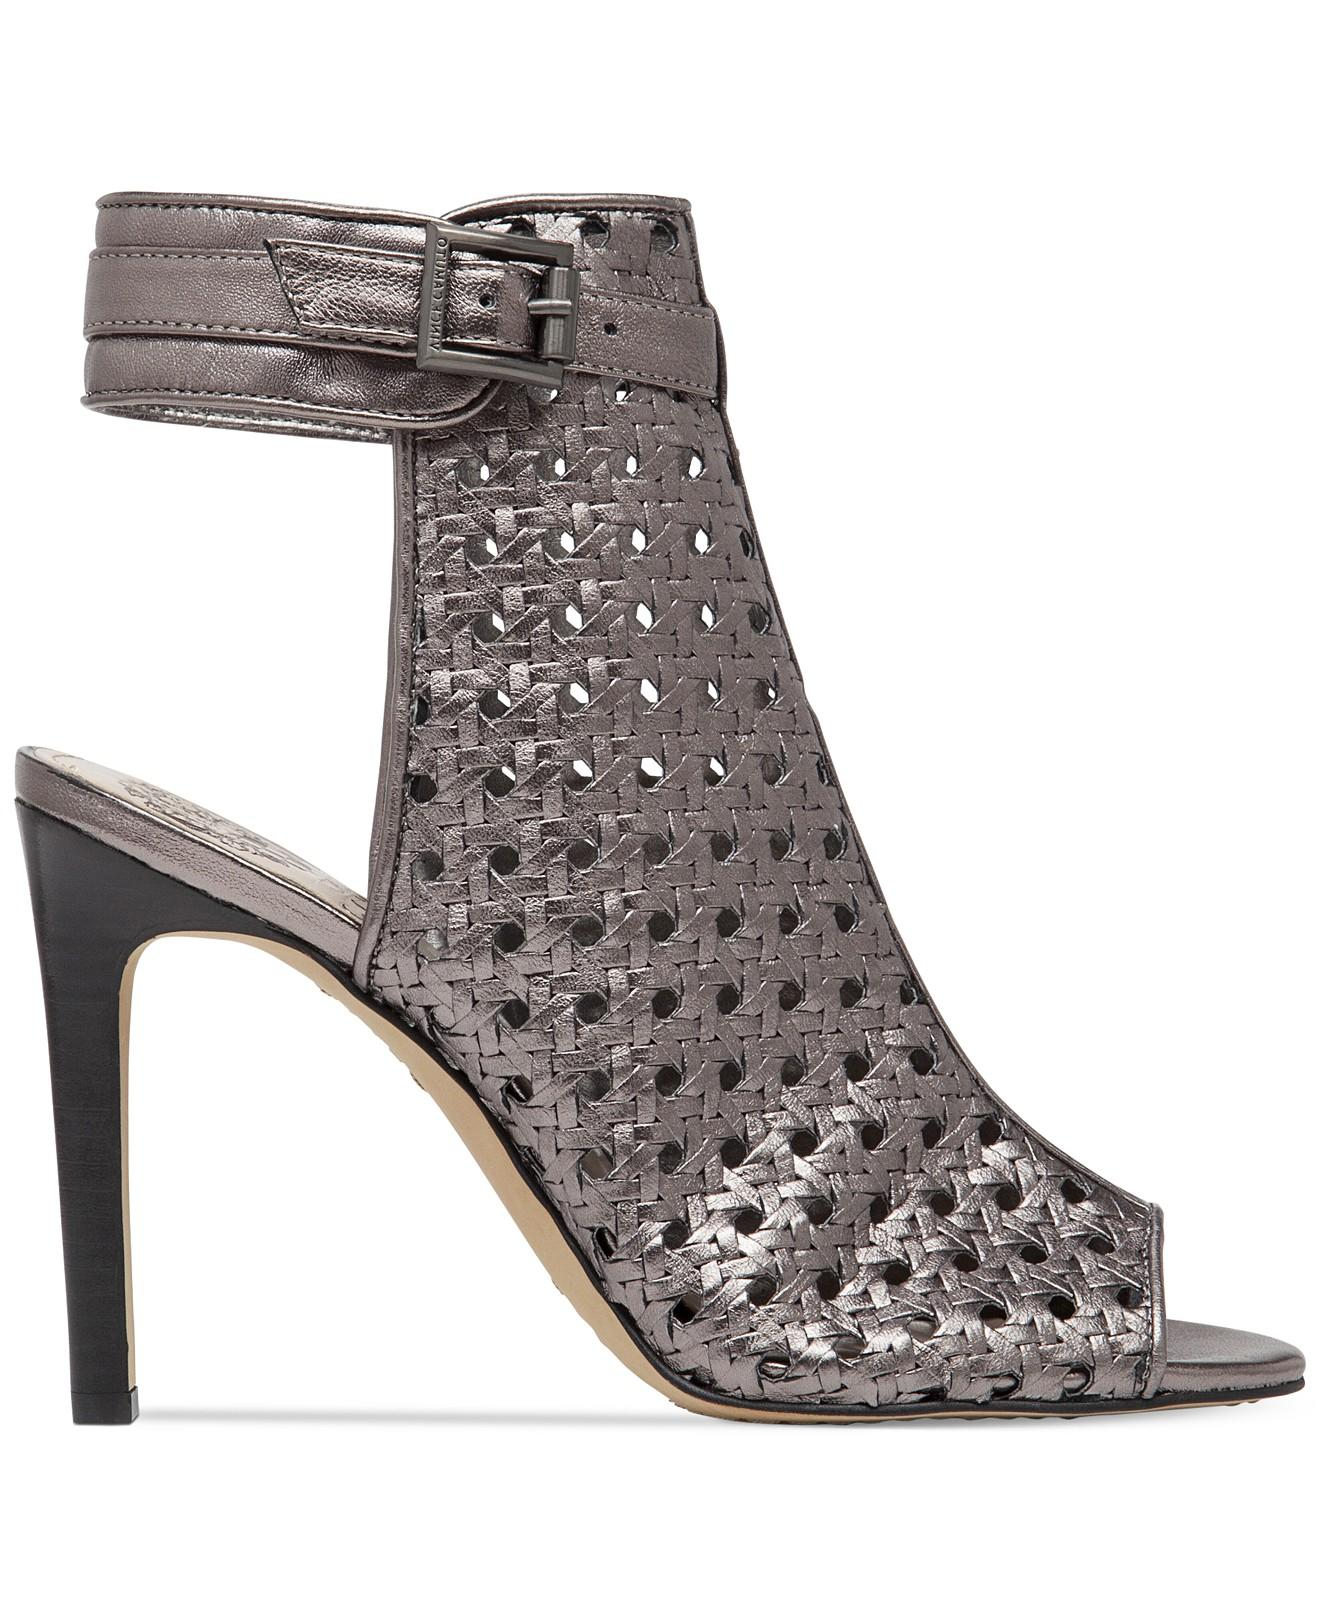 Vince Camuto Karsten Perforated Sandals from Macys | Shoes